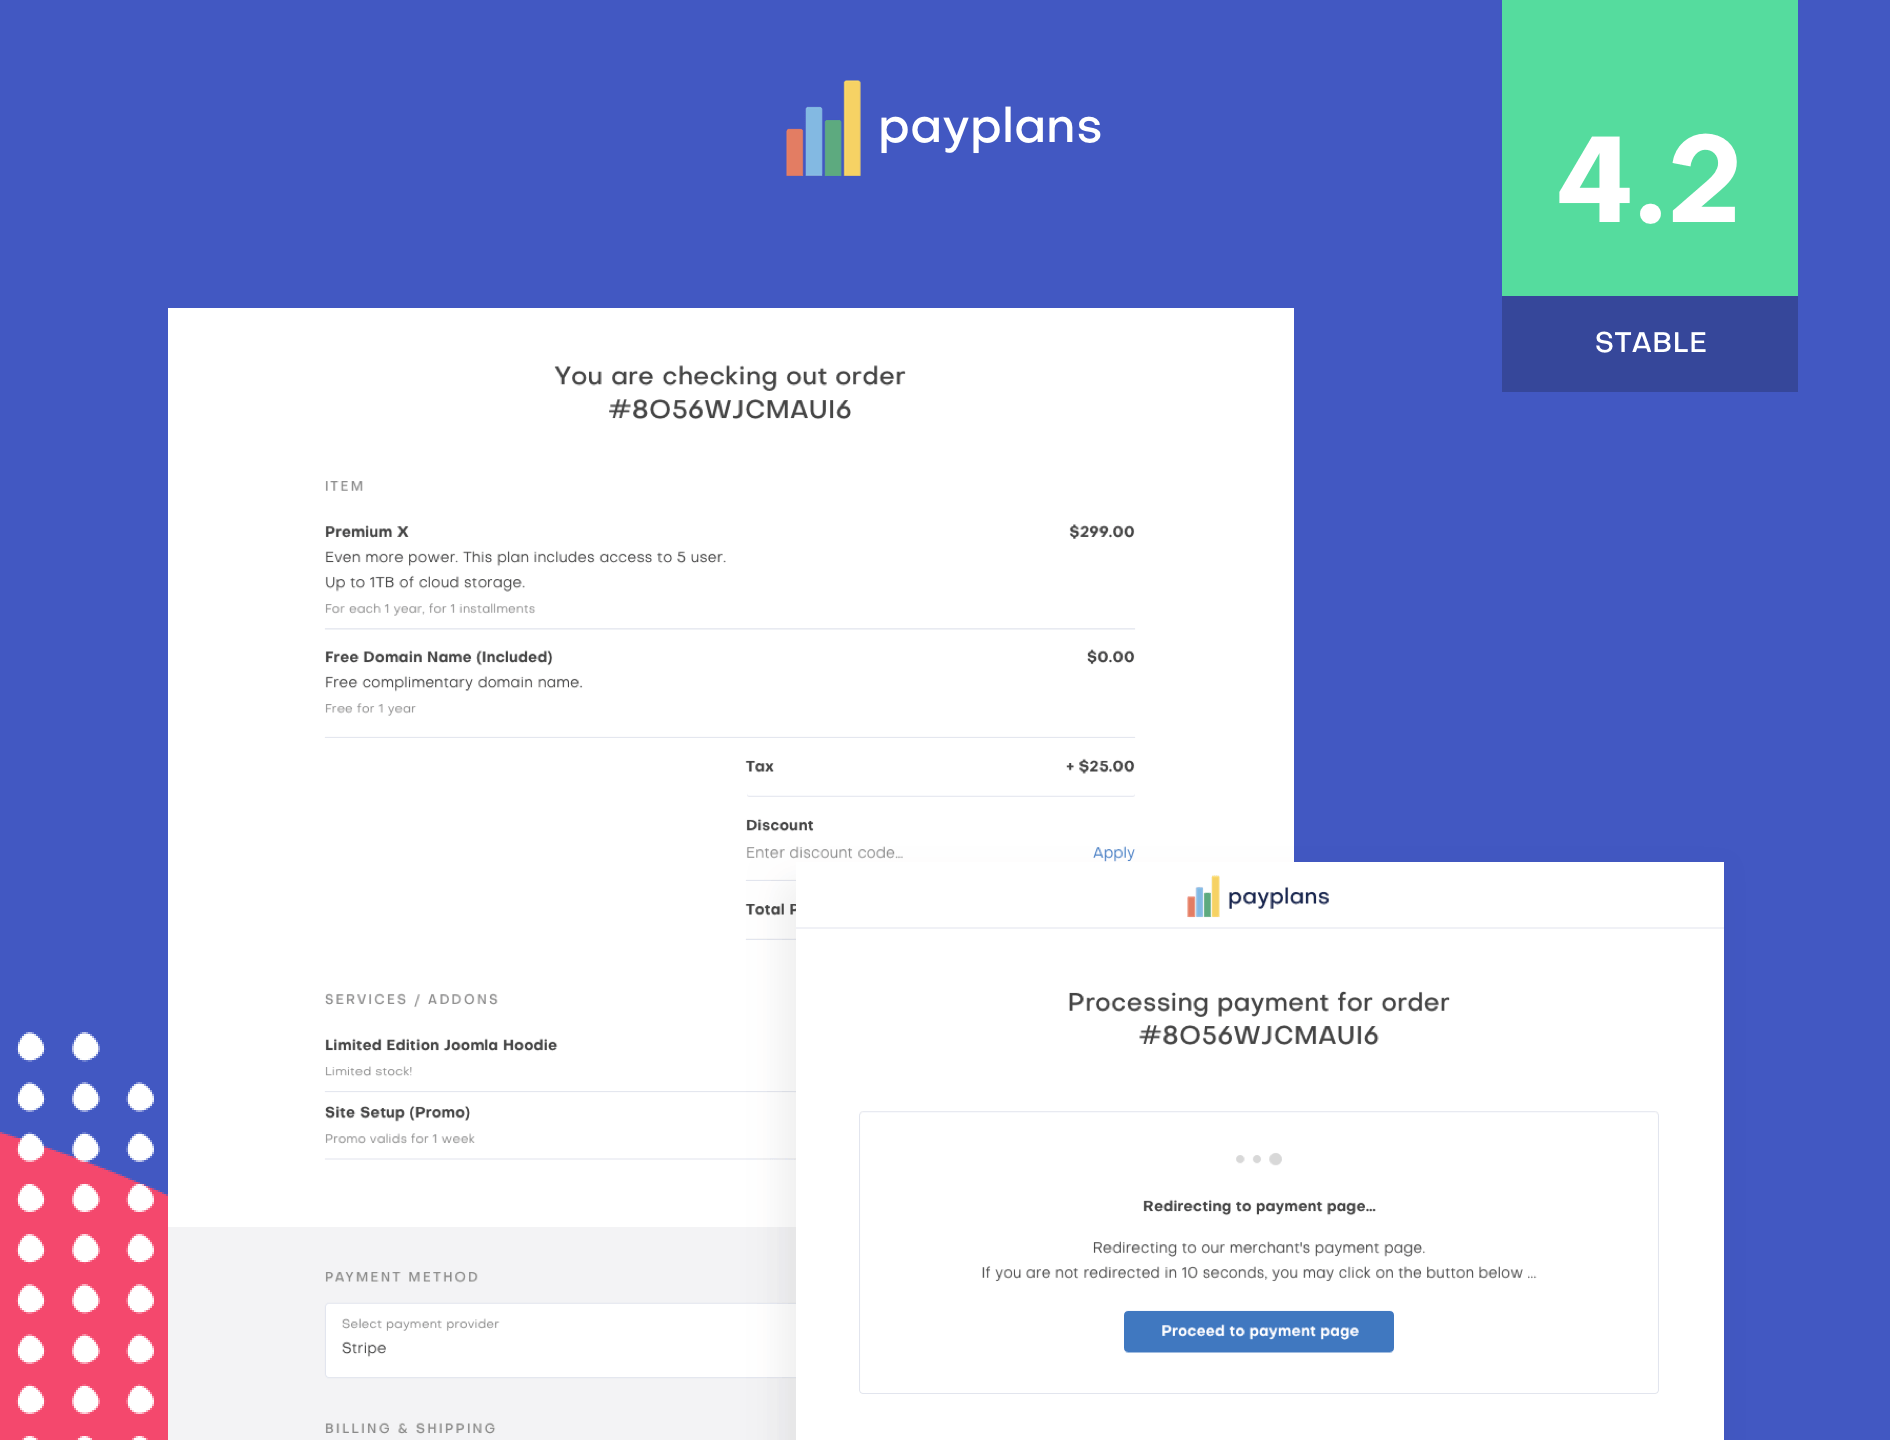 PayPlans 4.2.1 Available Today